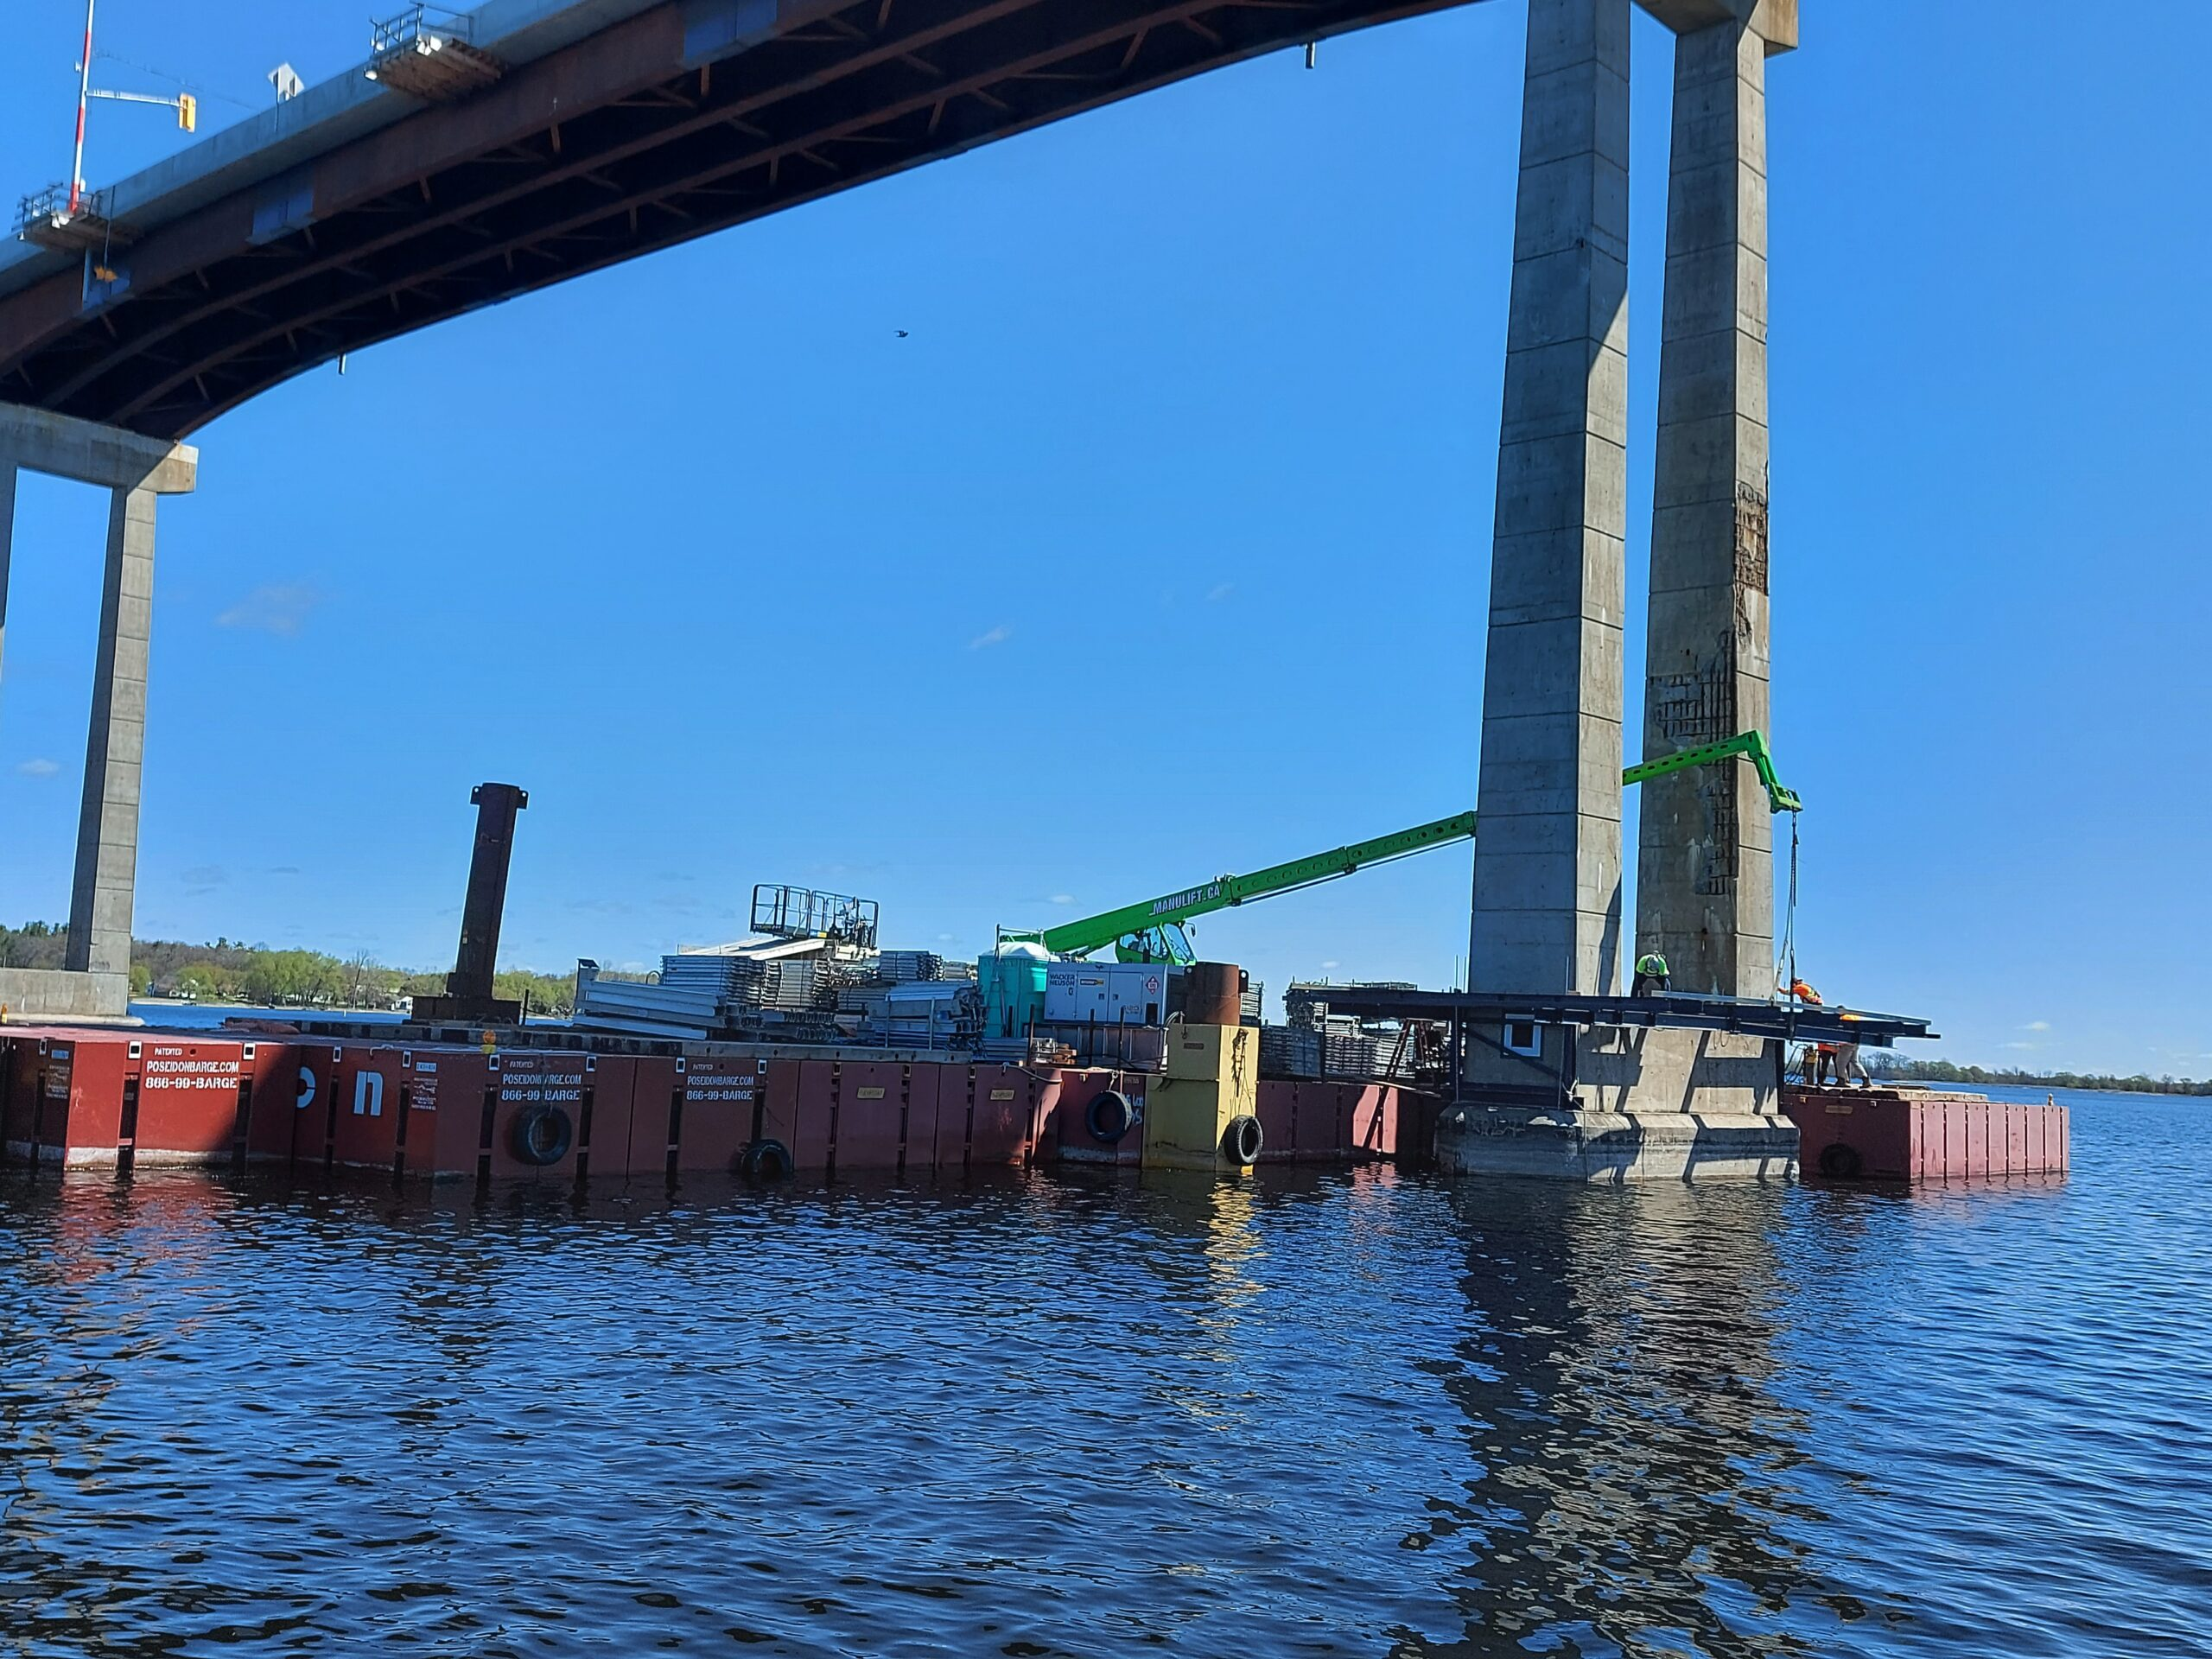 Expanded view of the erection of scaffolding on pier 10